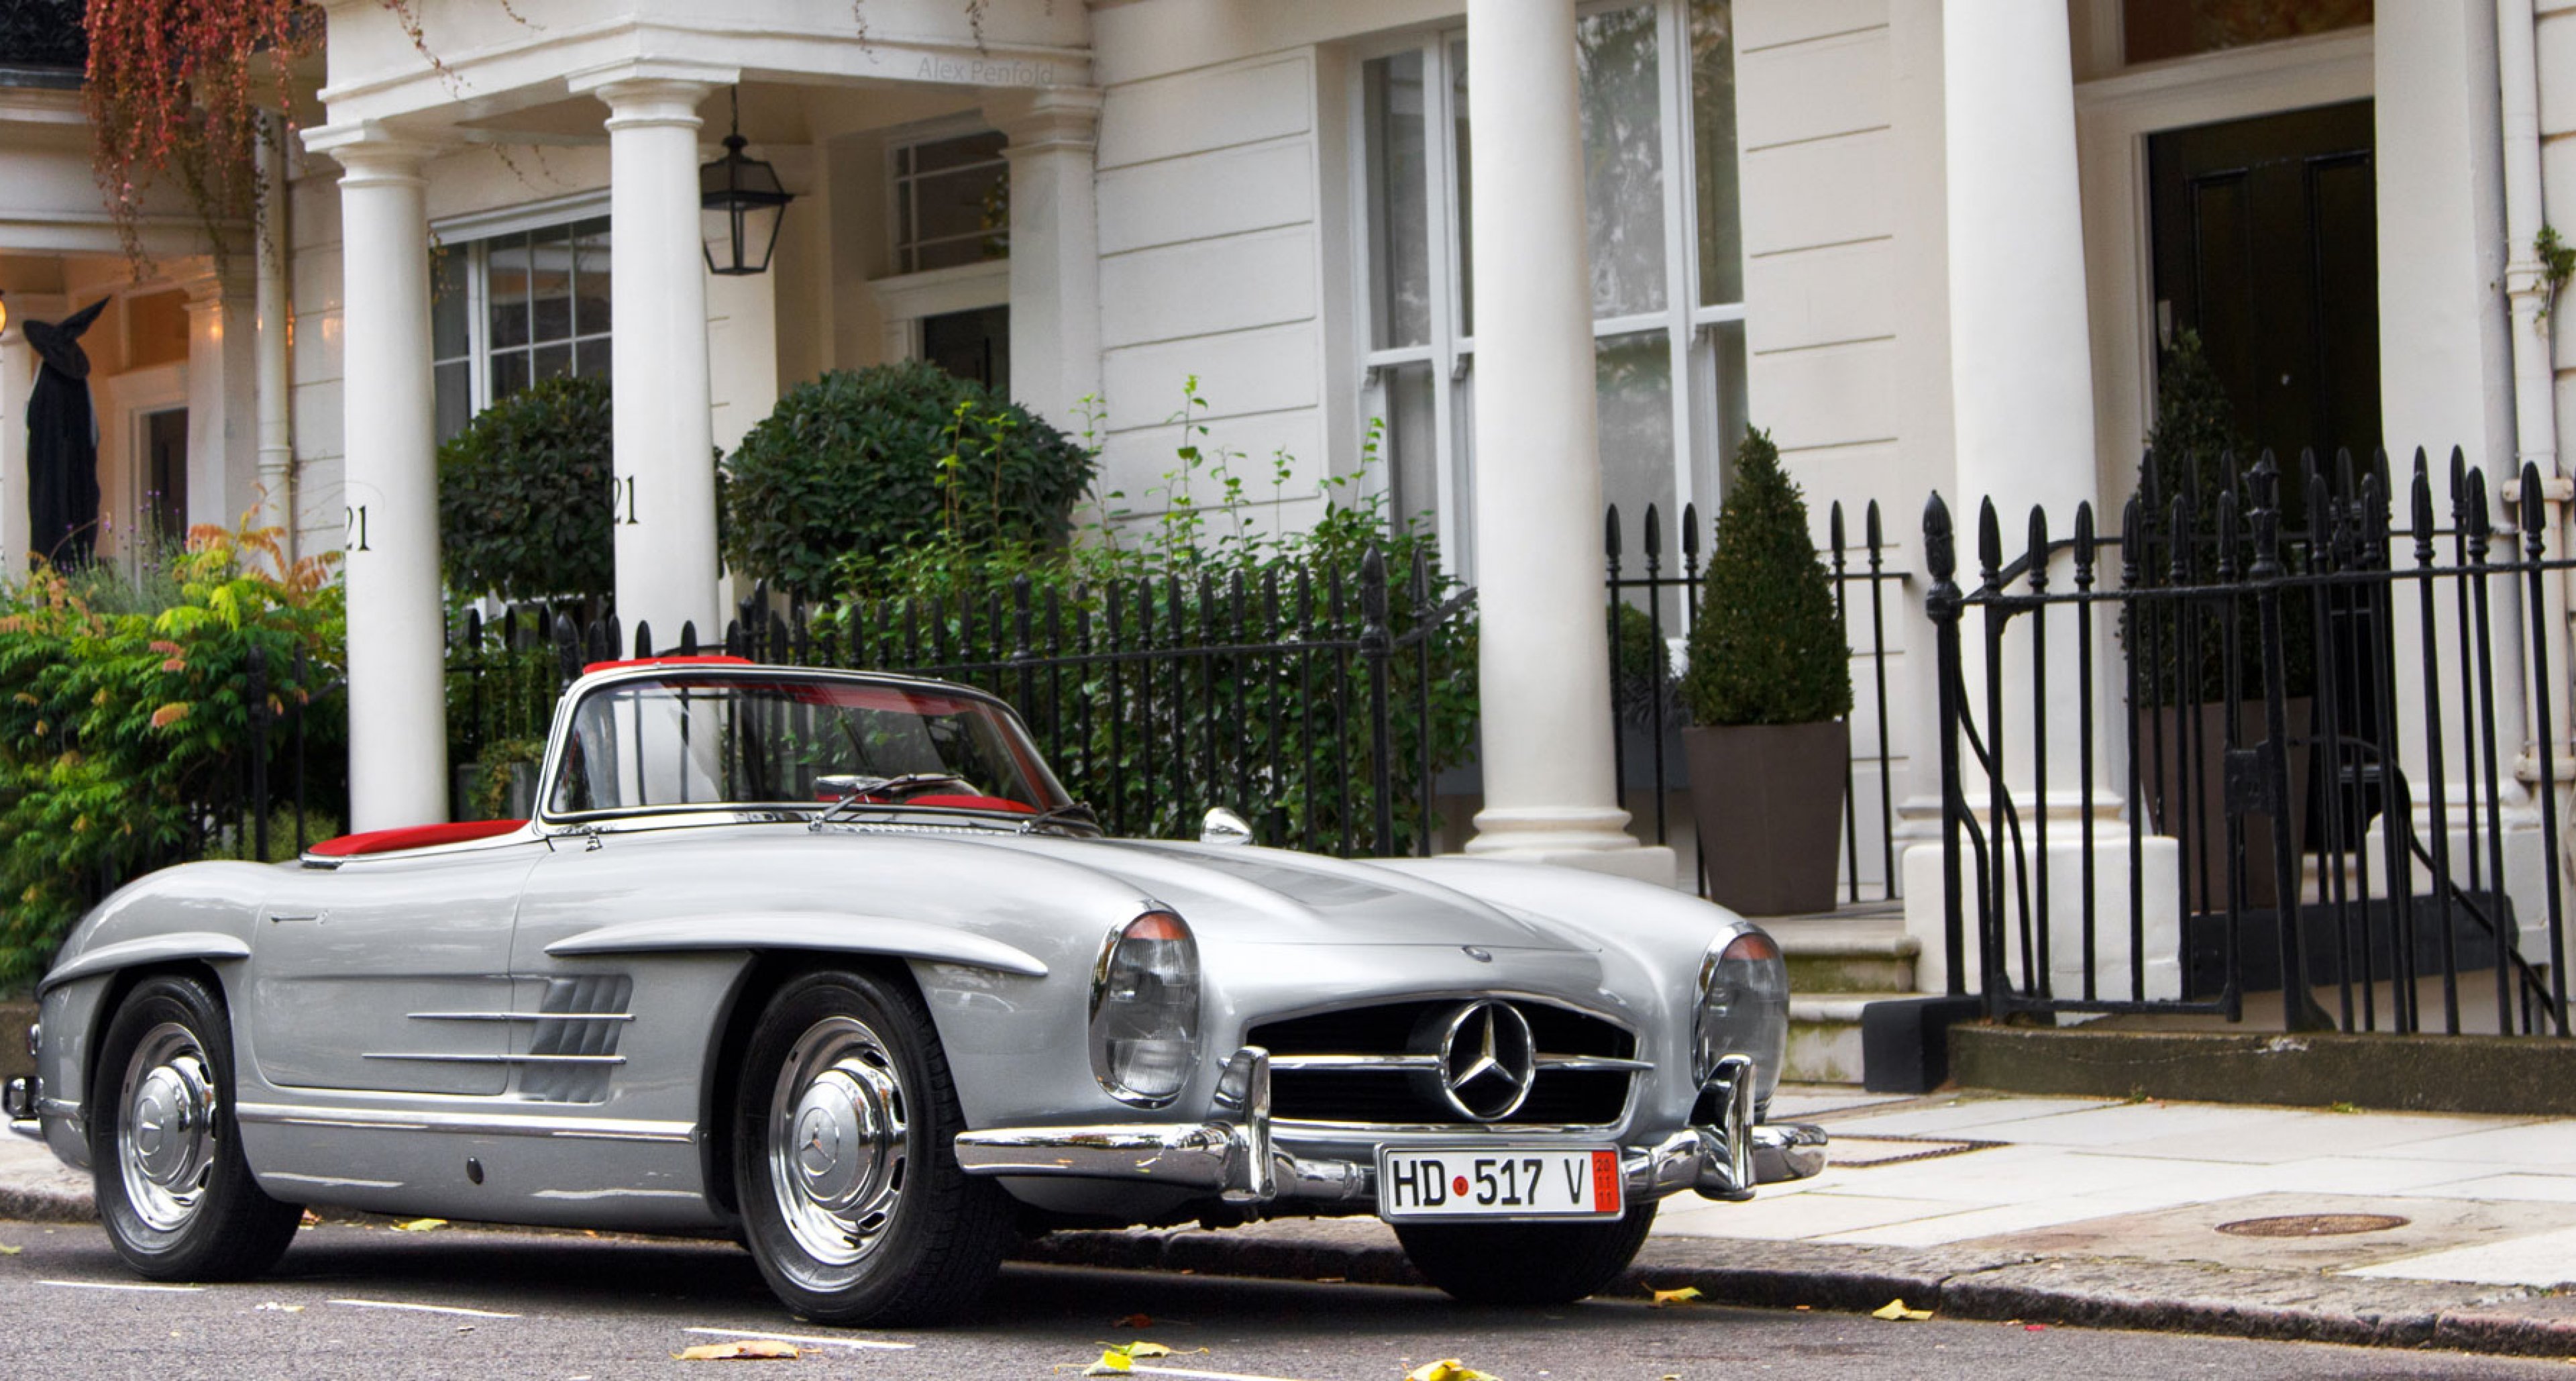 In Photos: The Coolest Classic Cars In London